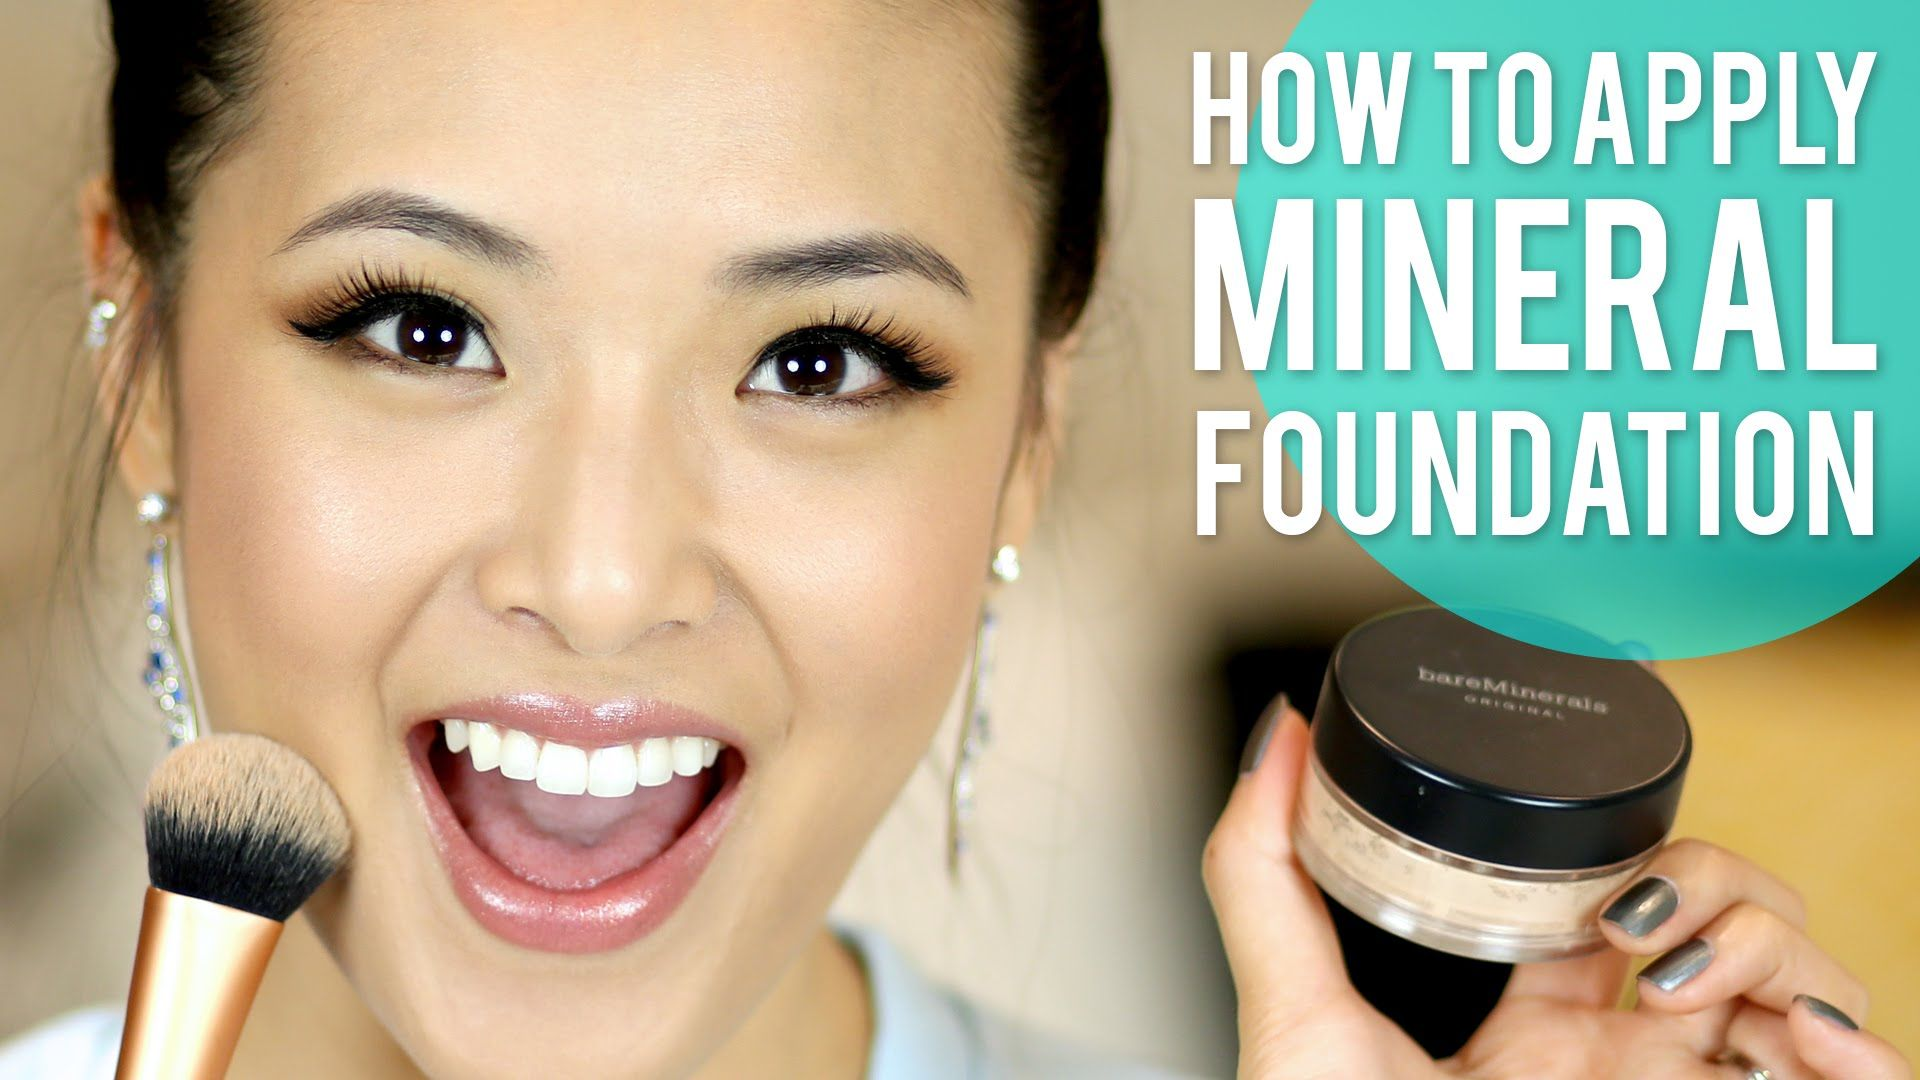 Mineral makeup is perfect for sensitive, acneprone skin